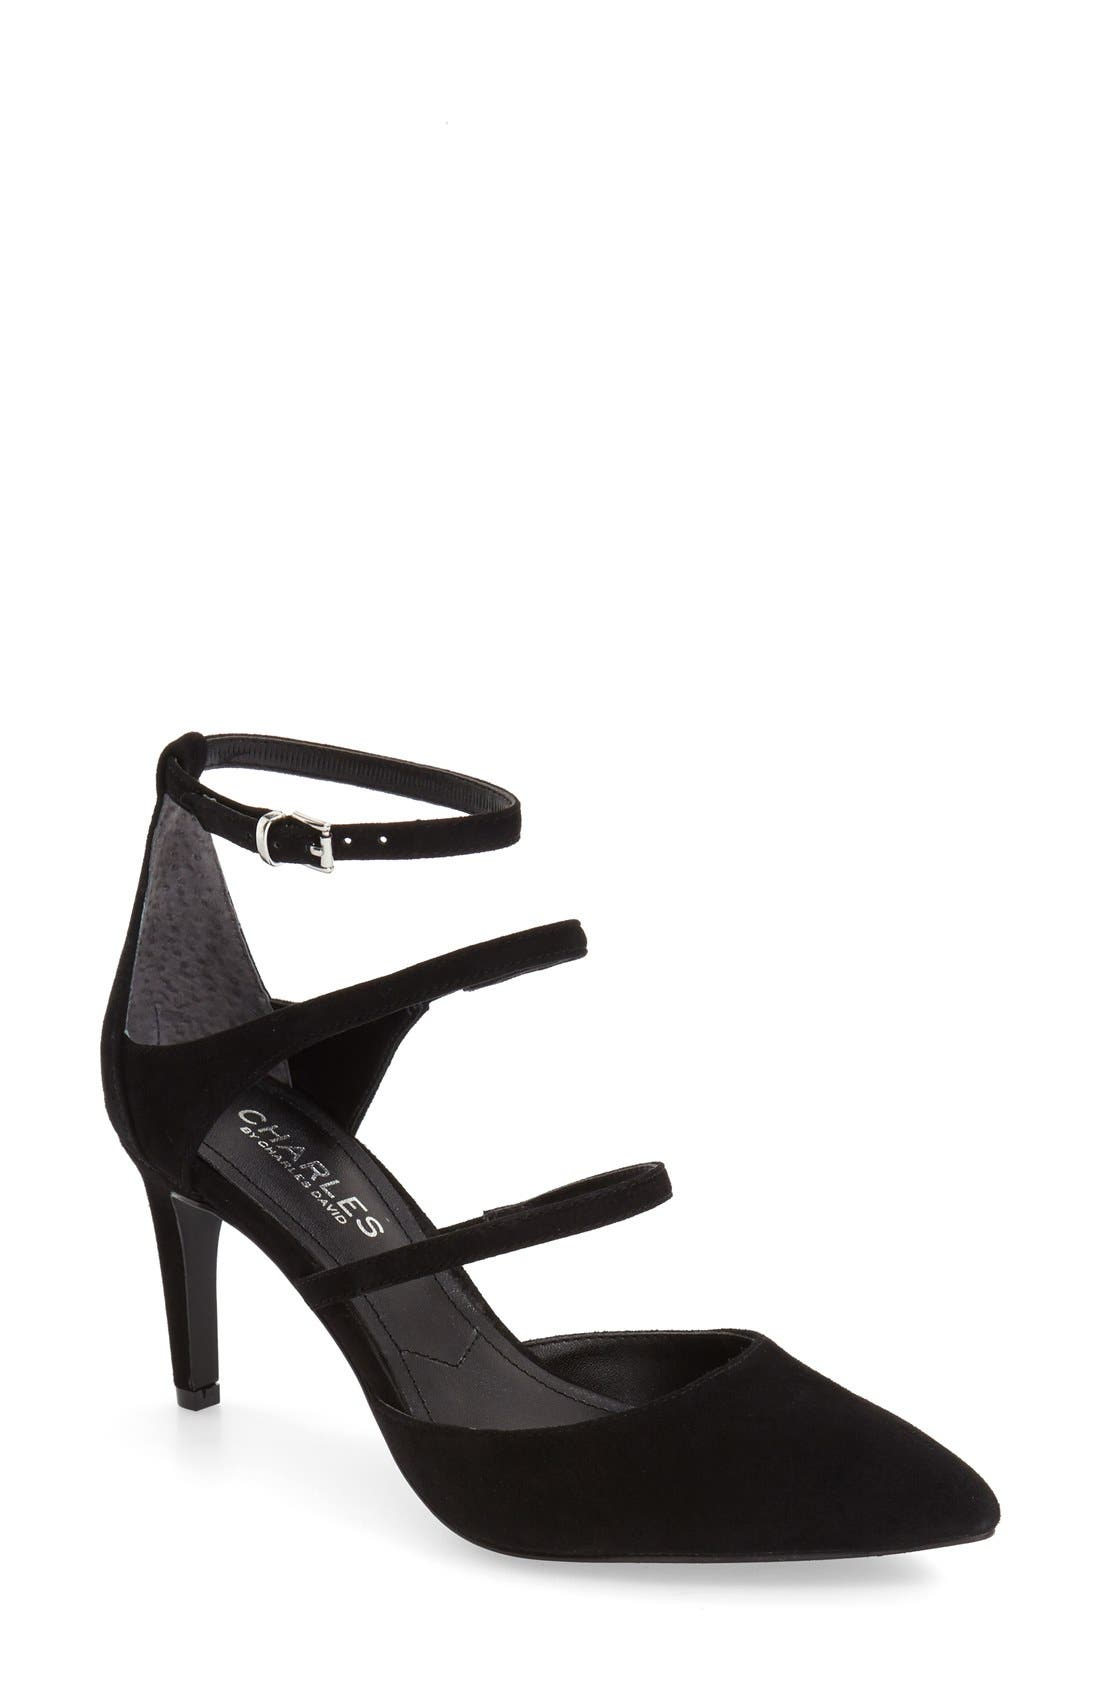 Alternate Image 1 Selected - Charles by Charles David 'Lena' Pointy Toe Strappy Pump (Women)